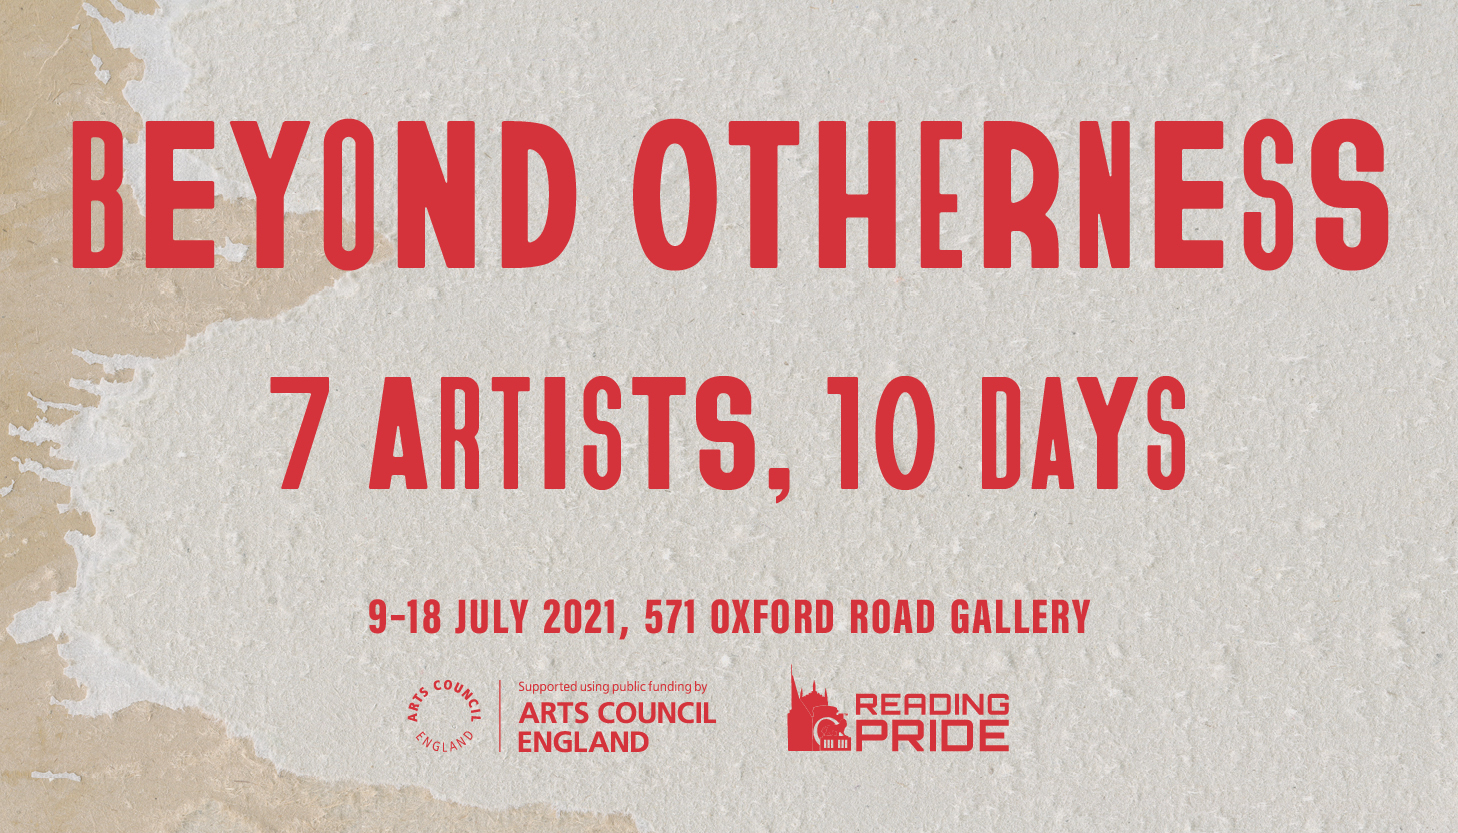 Beyond Otherness Poster